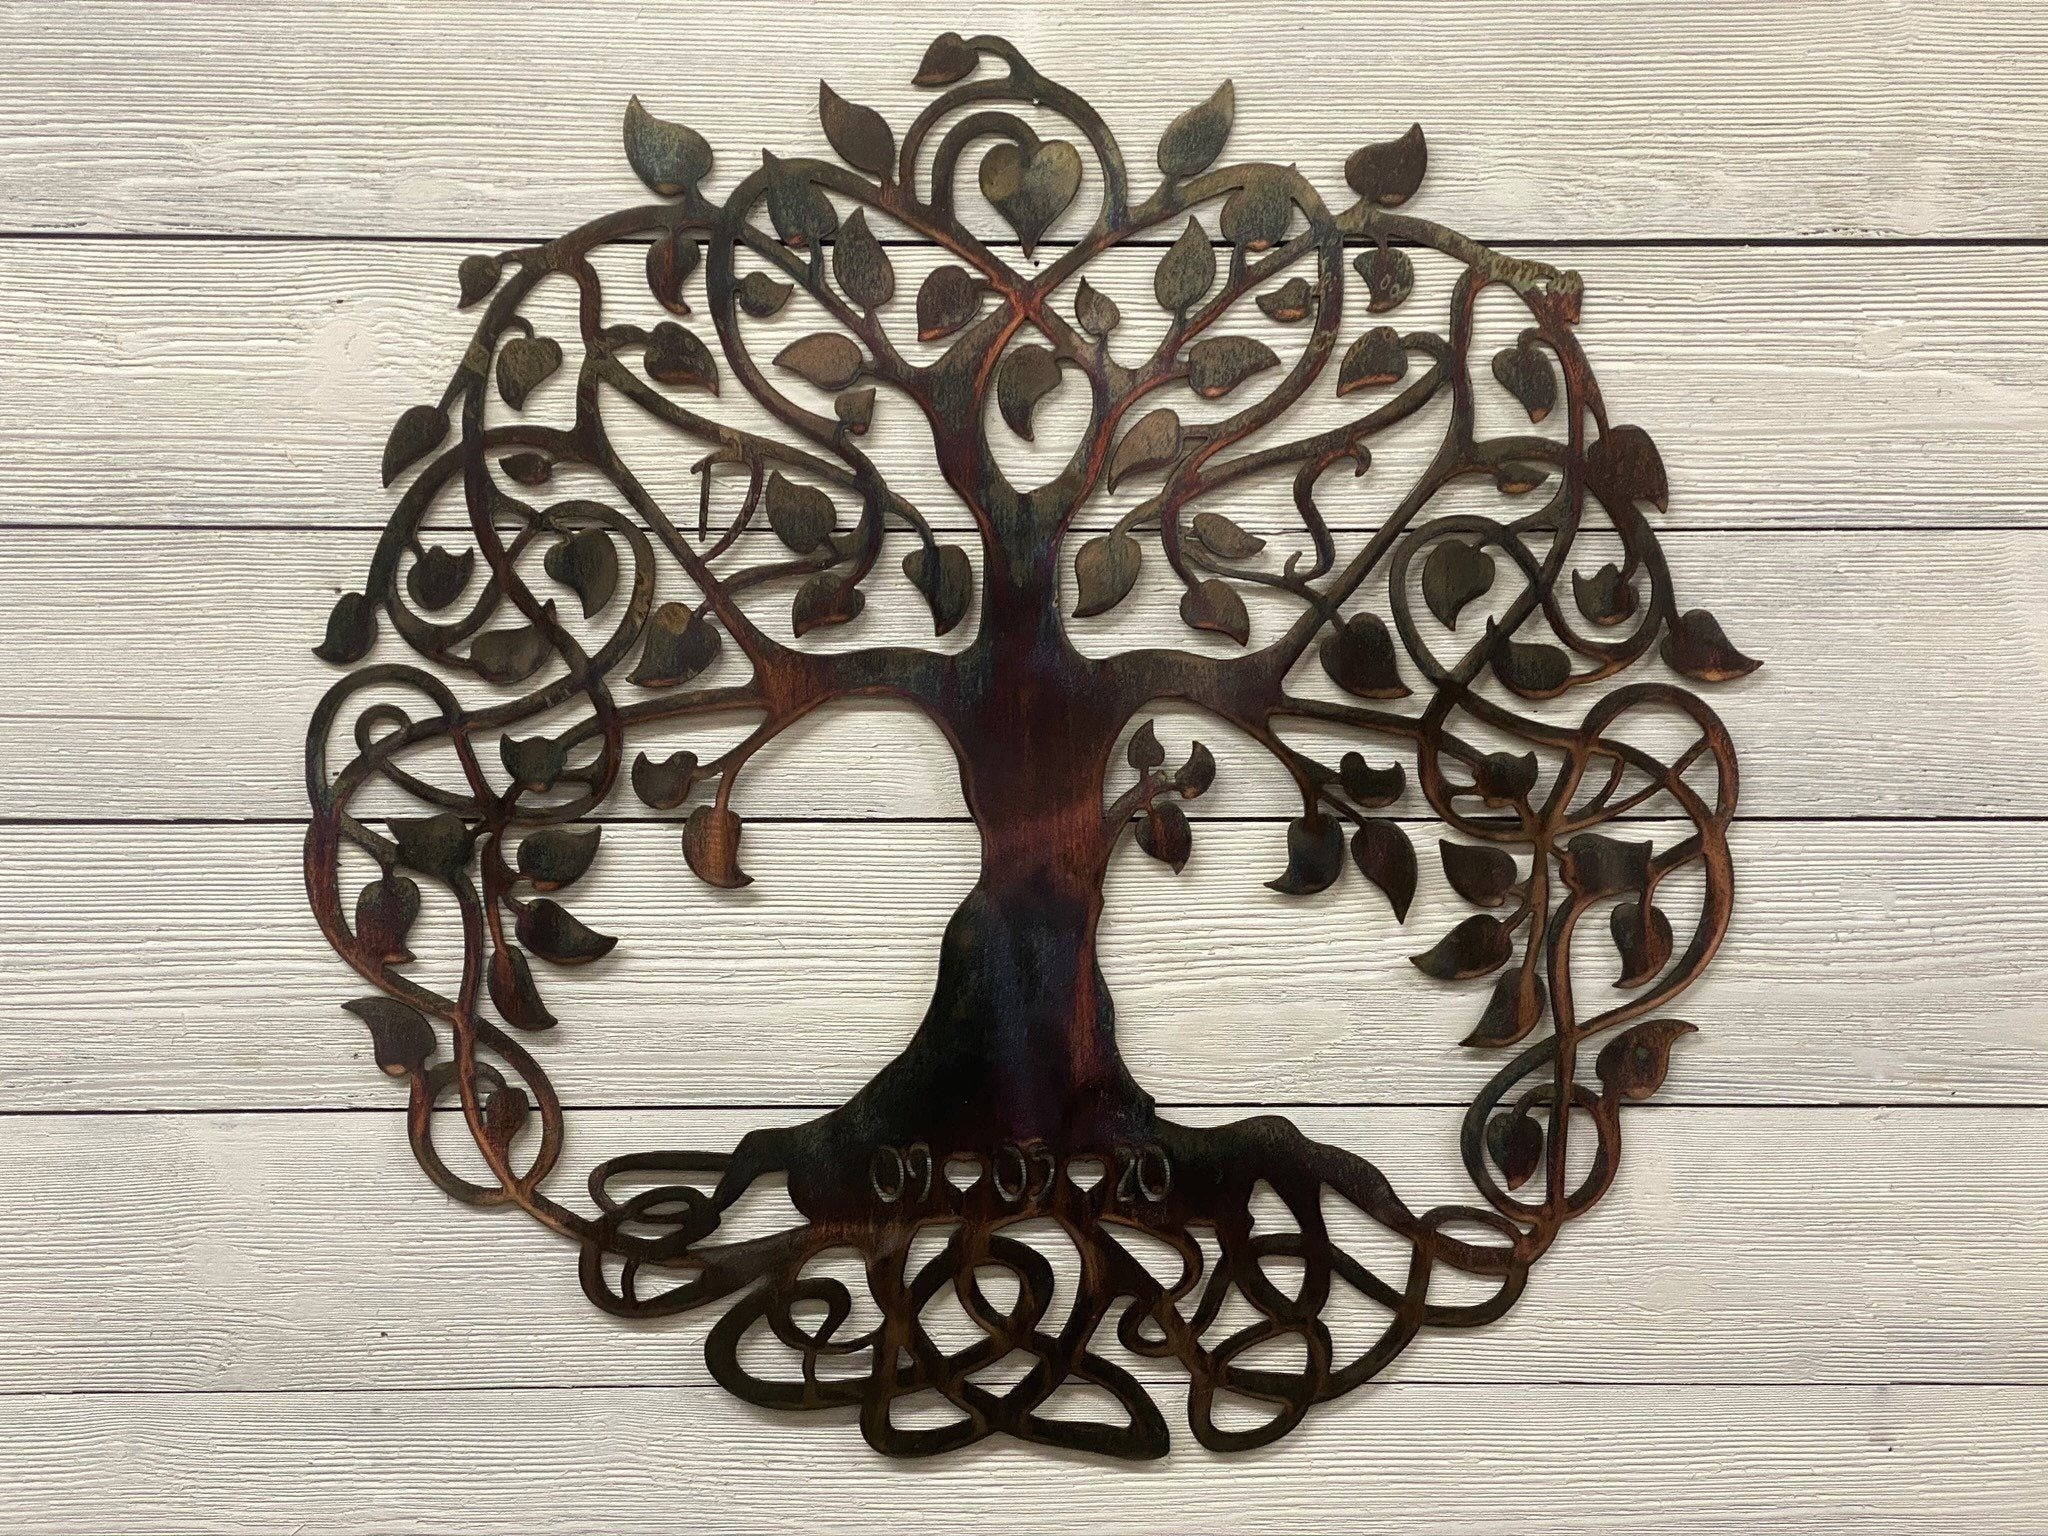 Celtic Tree of Life - Personalized Wall Art Third Shift Fabrication 24"